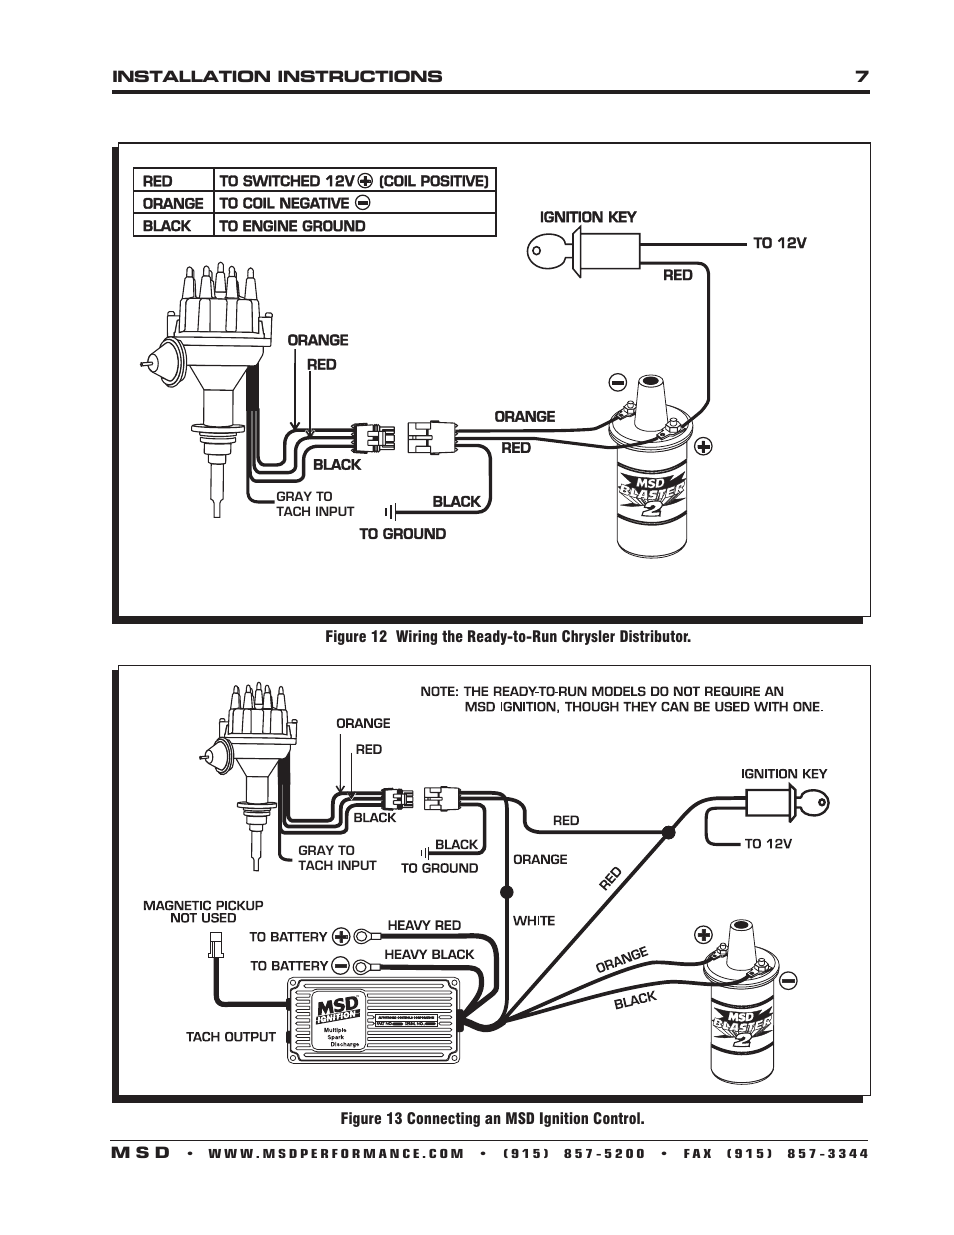 Atomic 4 Wiring Diagram from schematron.org